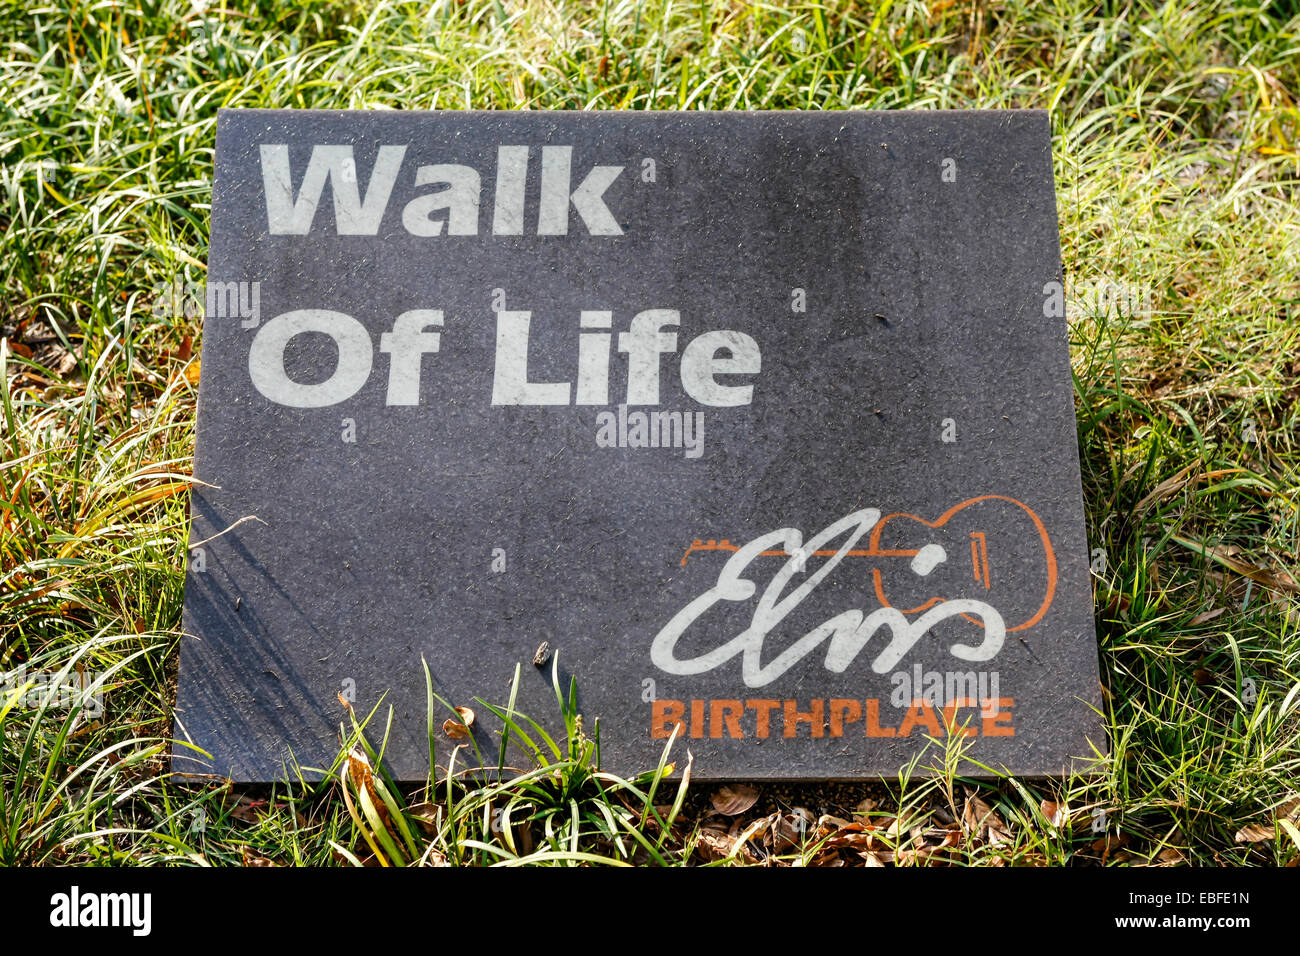 The Elvis Presley Walk of Life sign at his birthplace museum in Tupelo MS - Stock Image